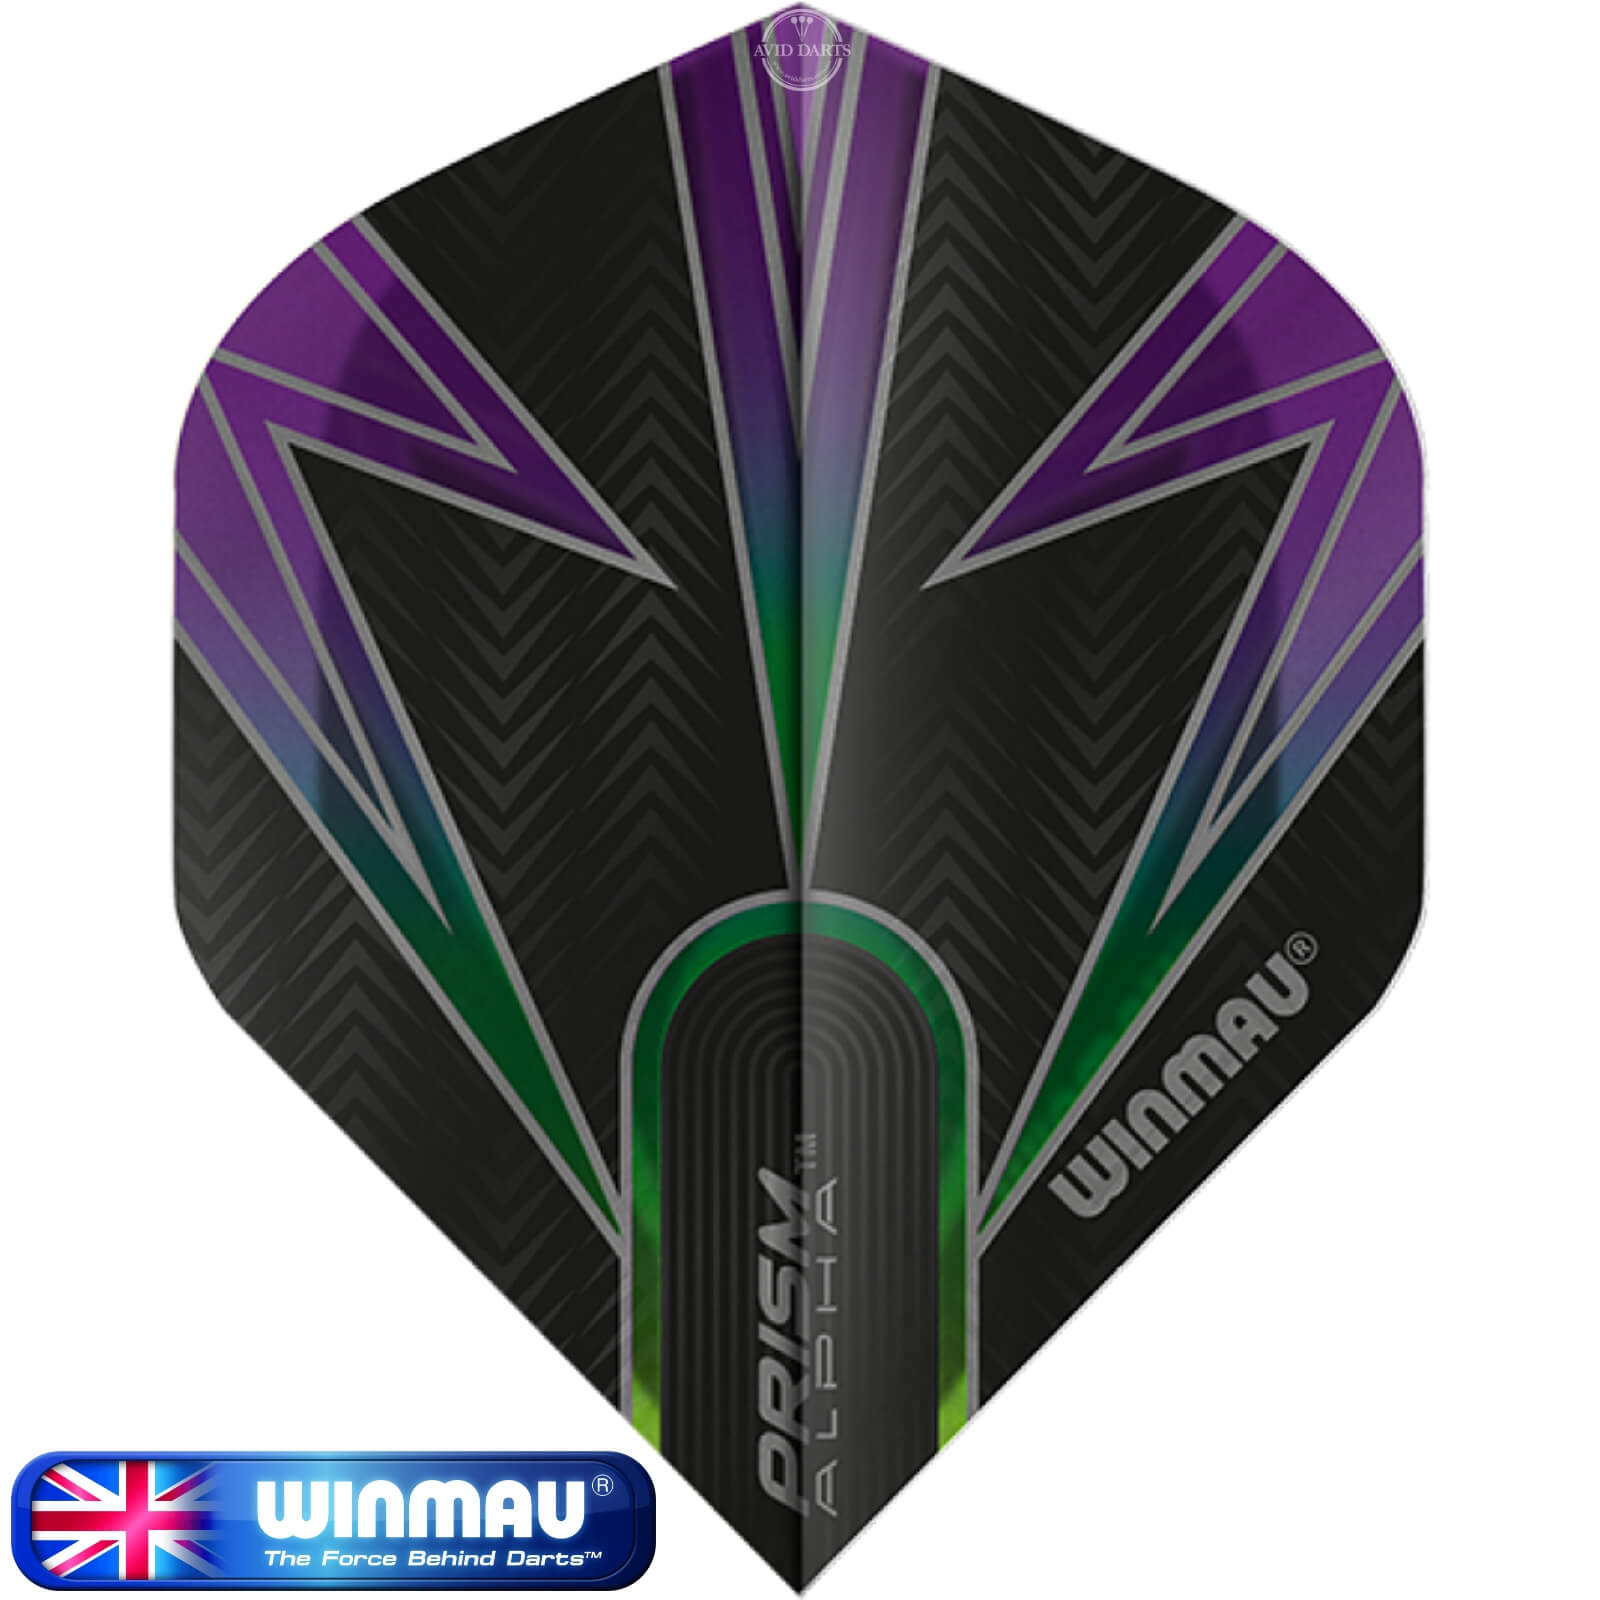 Dart Flights - Winmau - Simon Whitlock Prism Alpha - Big Wing Dart Flights